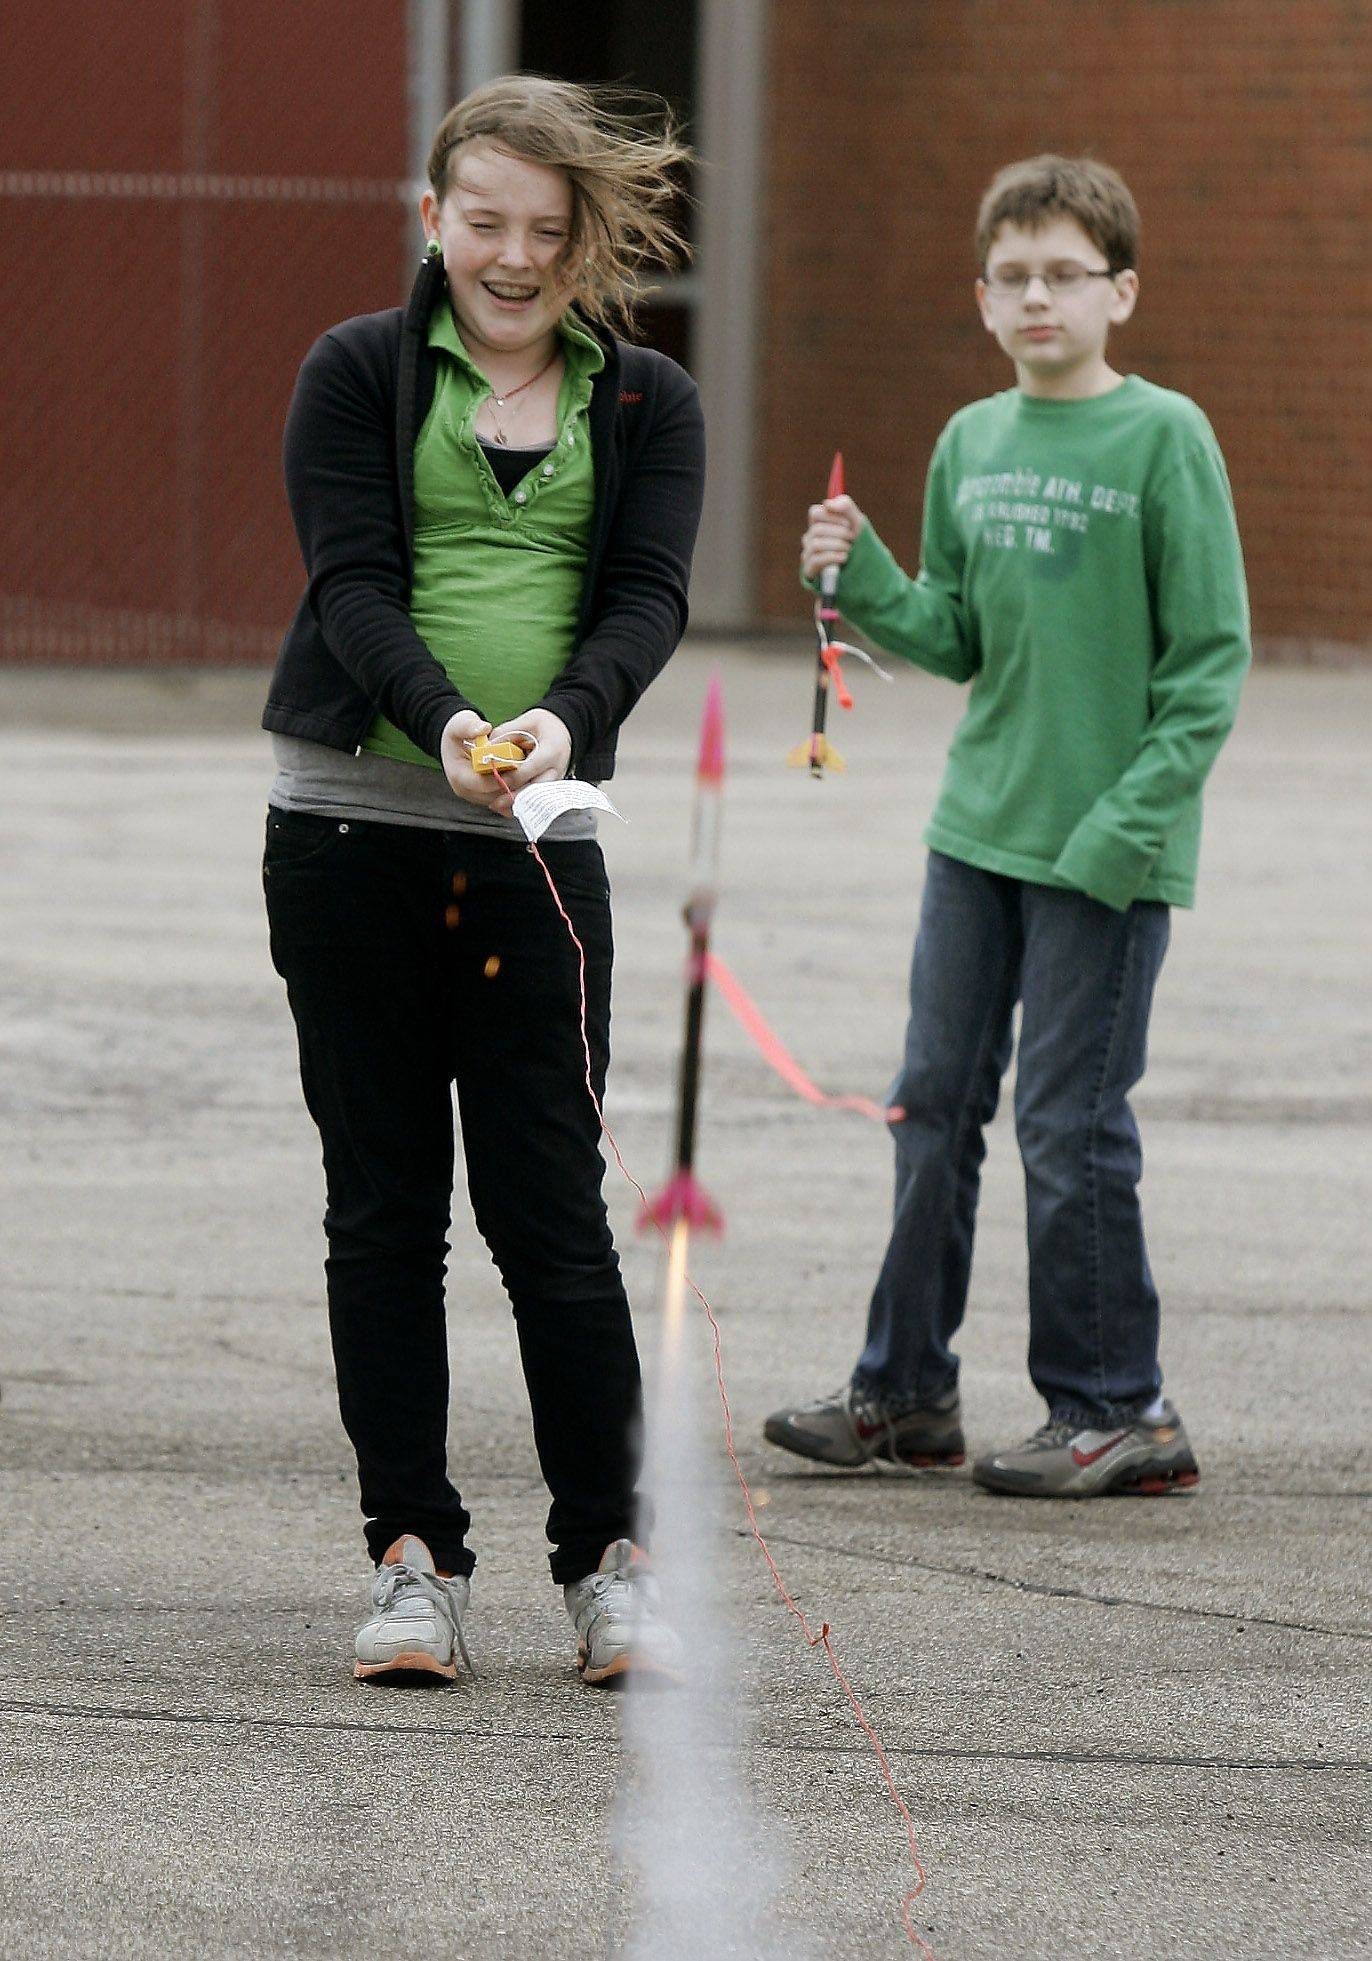 Abbie Sise, 11, left, fires the ignition as Andrew Hurley, 13, watches the rocket liftoff Thursday at Fremont Middle School in Mundelein.